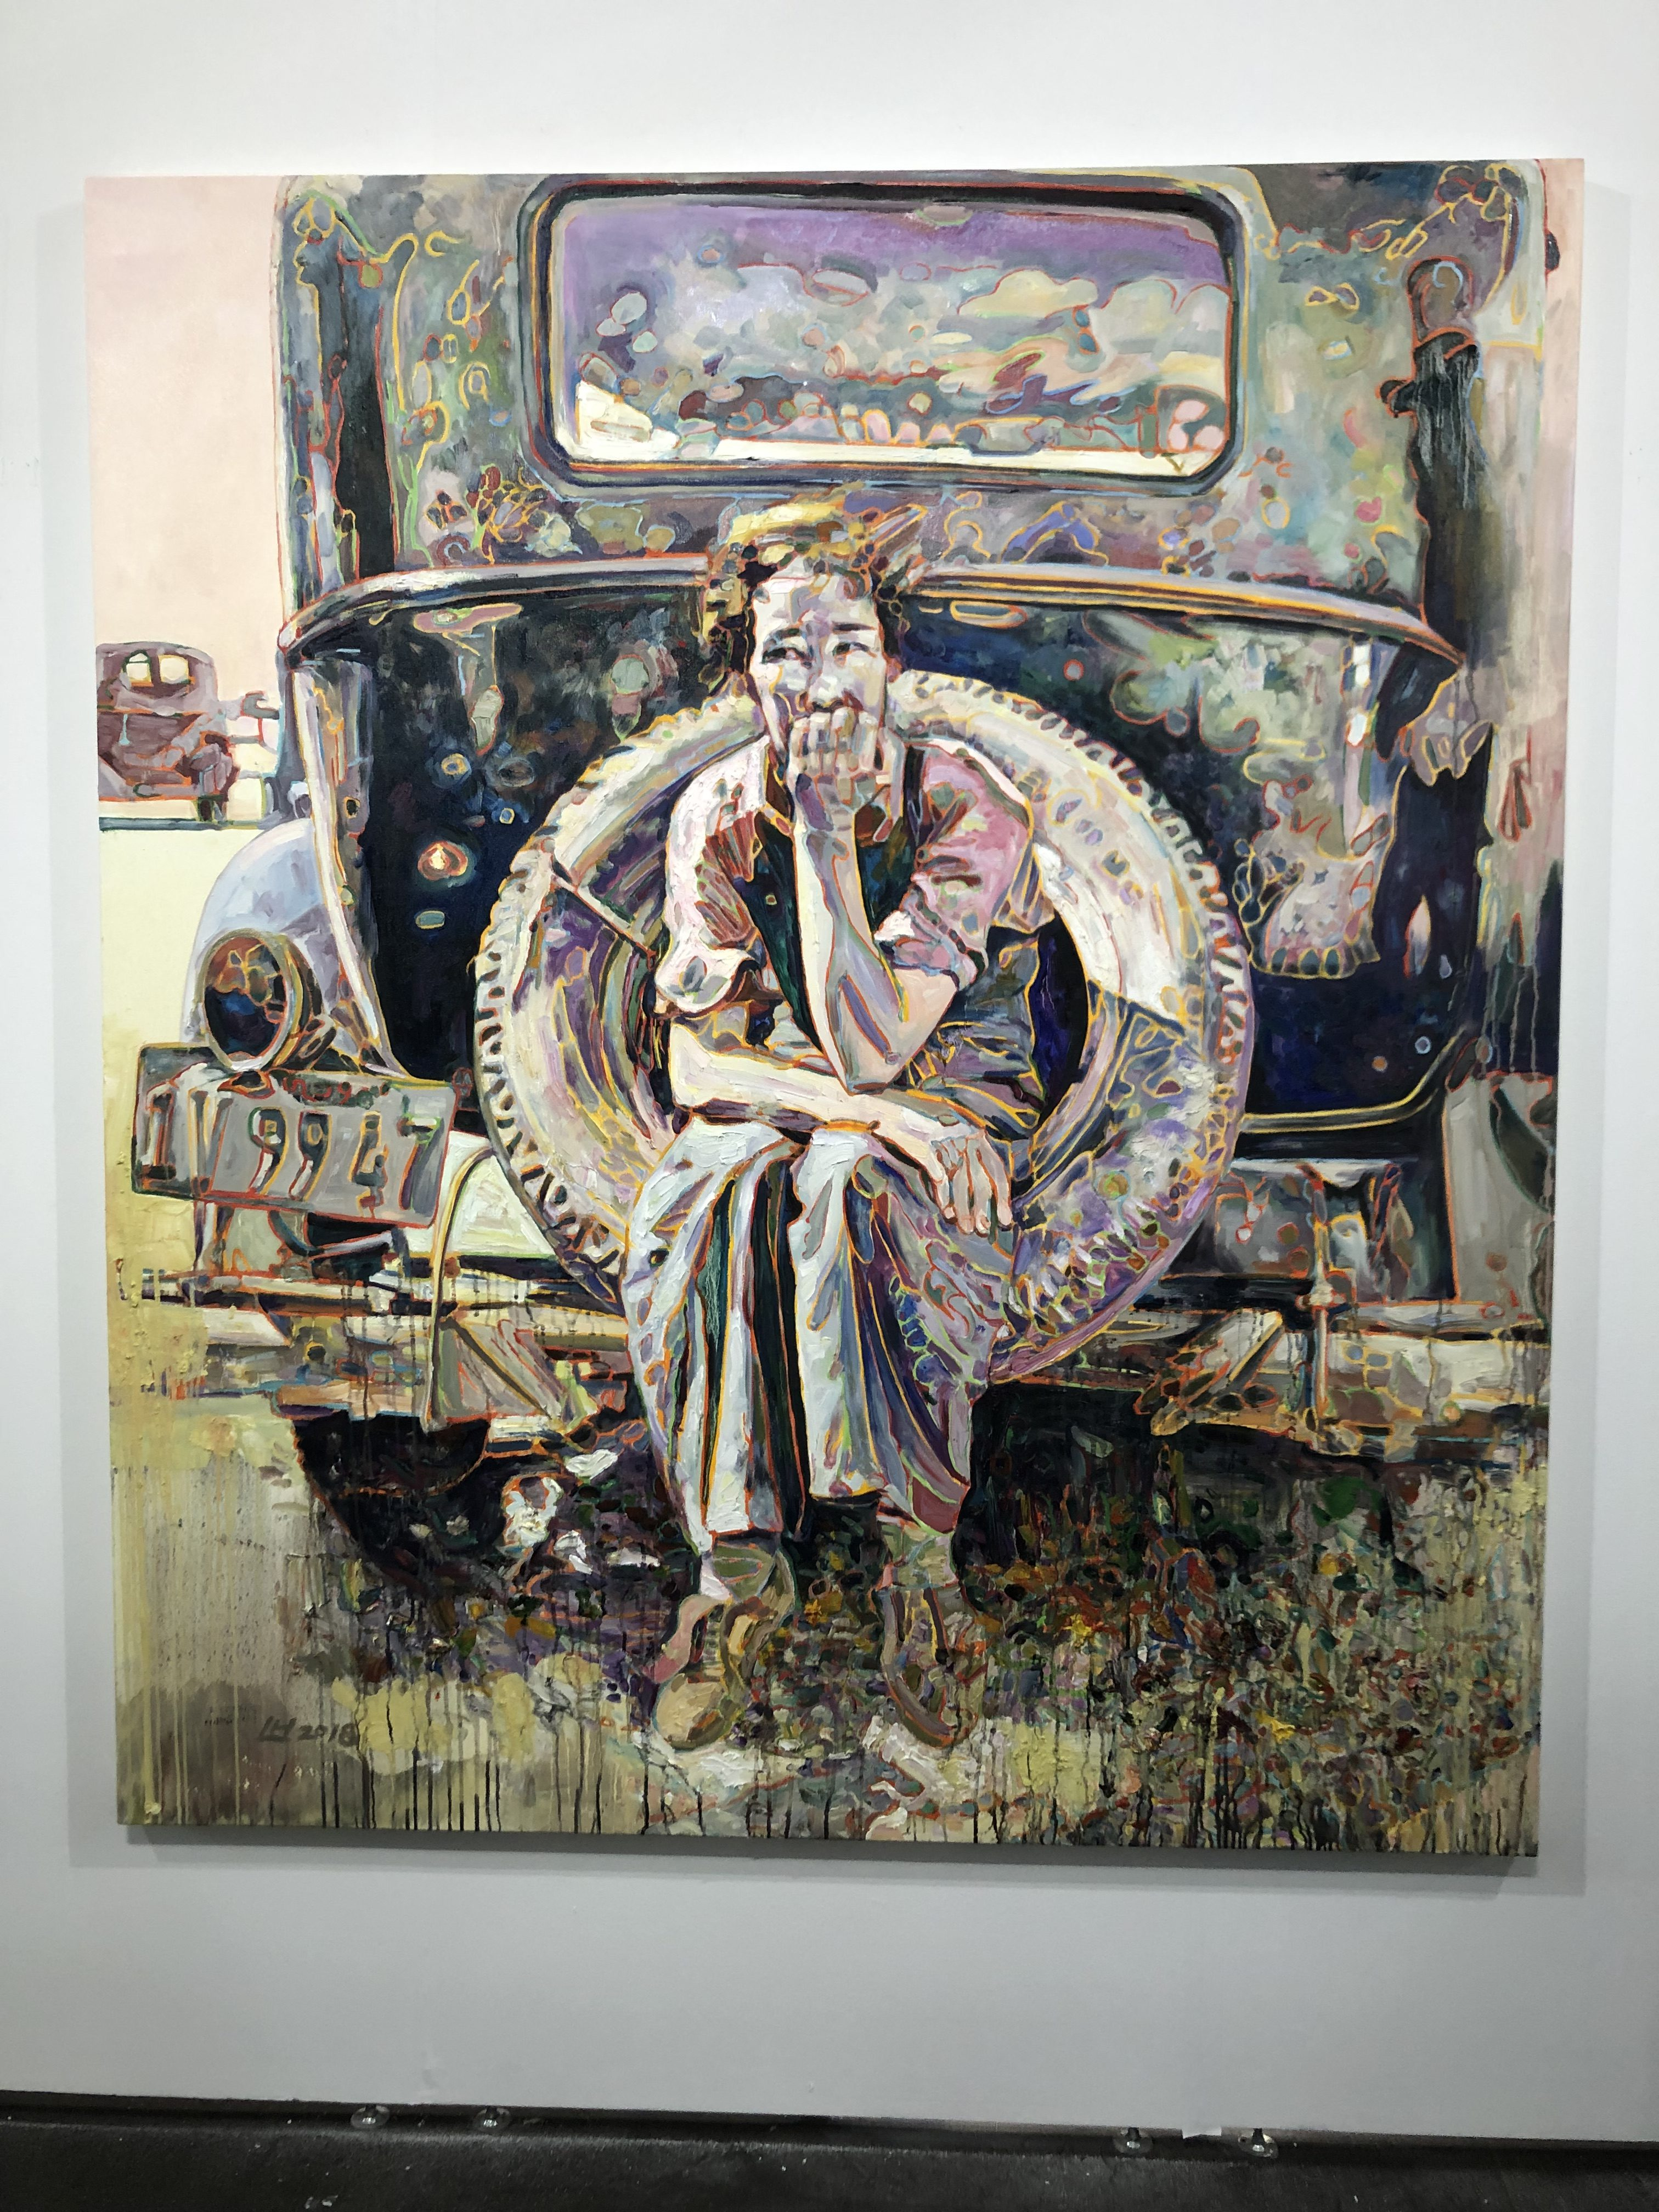 a painting of a person in thought sitting on the spare tire perched to the back of a car (painted very stylistically with many colors)